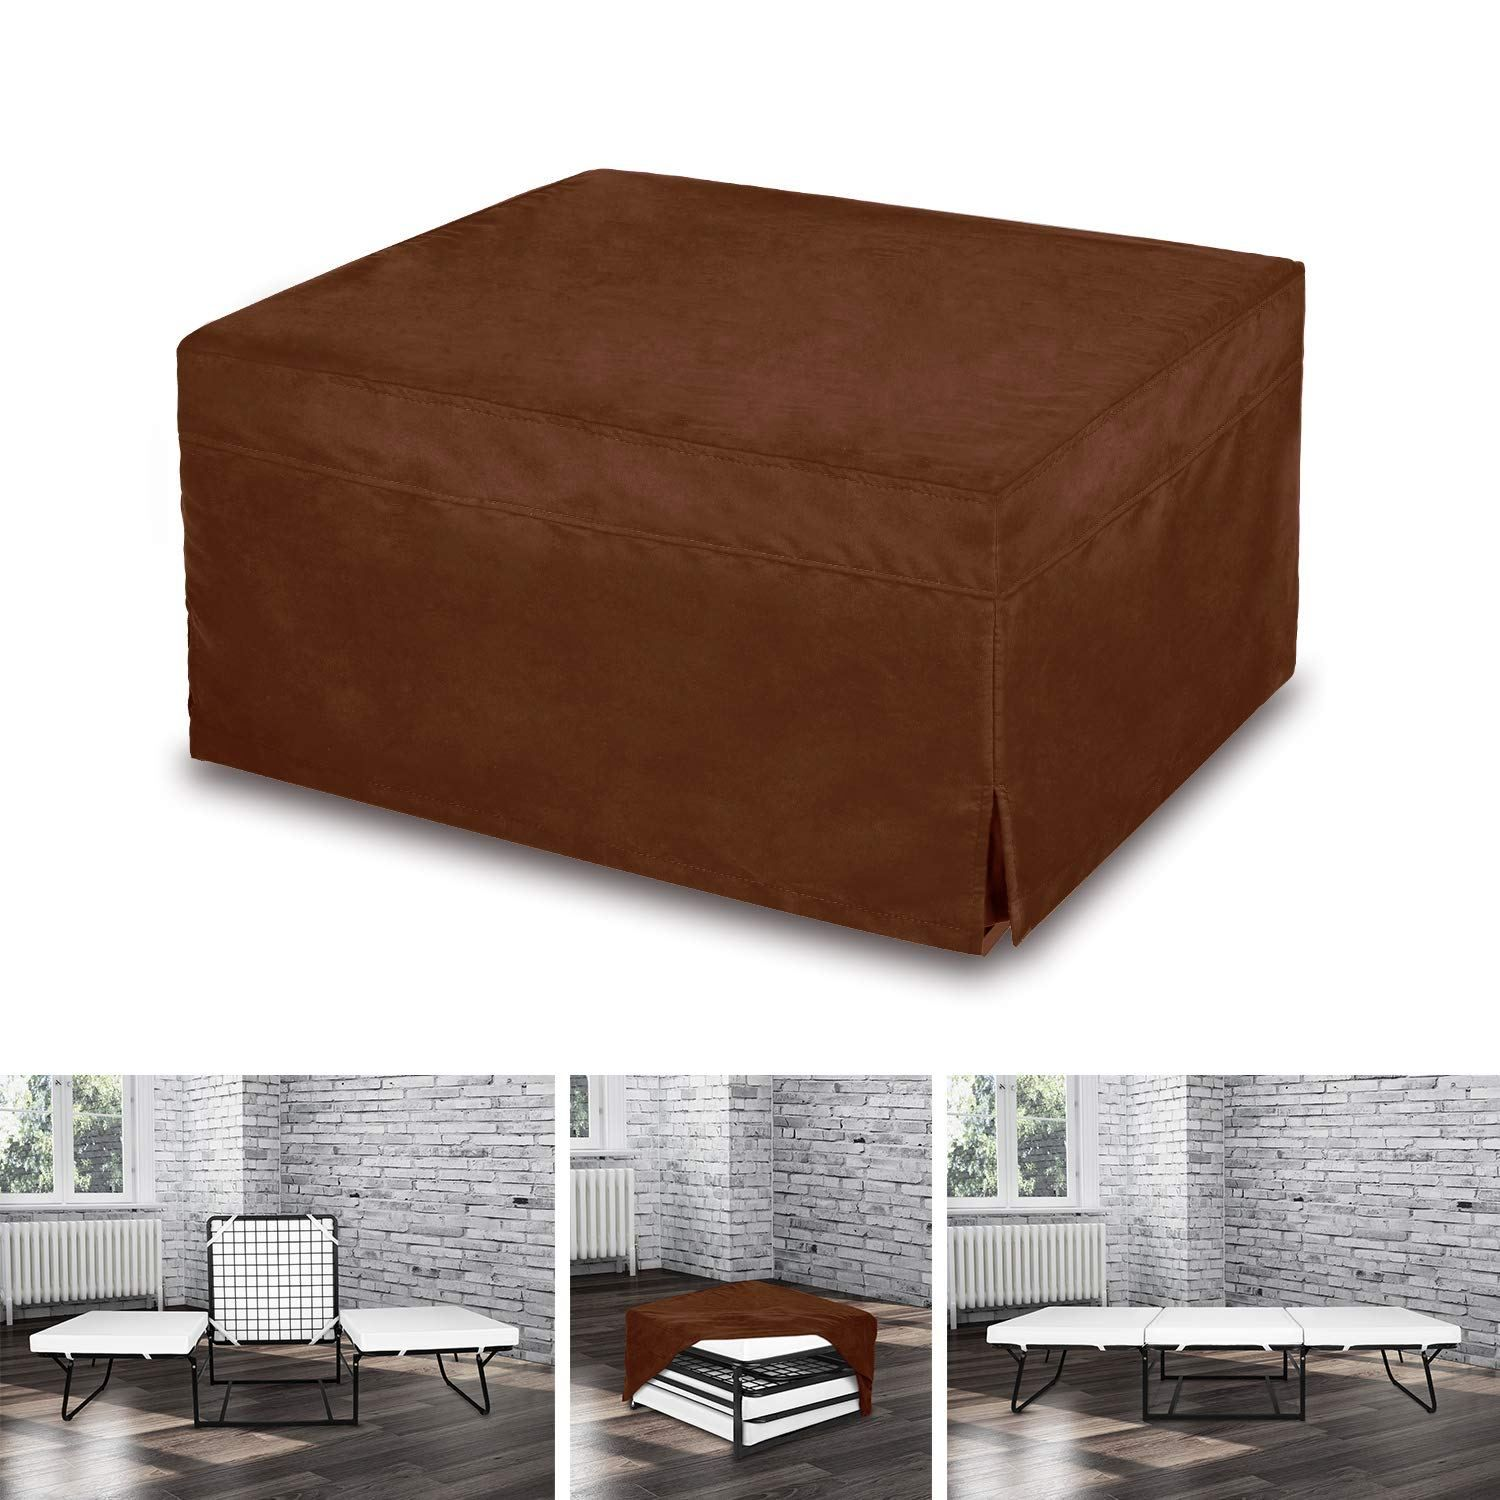 Space Innovations Folding Ottoman Sleeper Guest Bed Brown Folding Ottoman Sleeper Ottoman Guest Bed